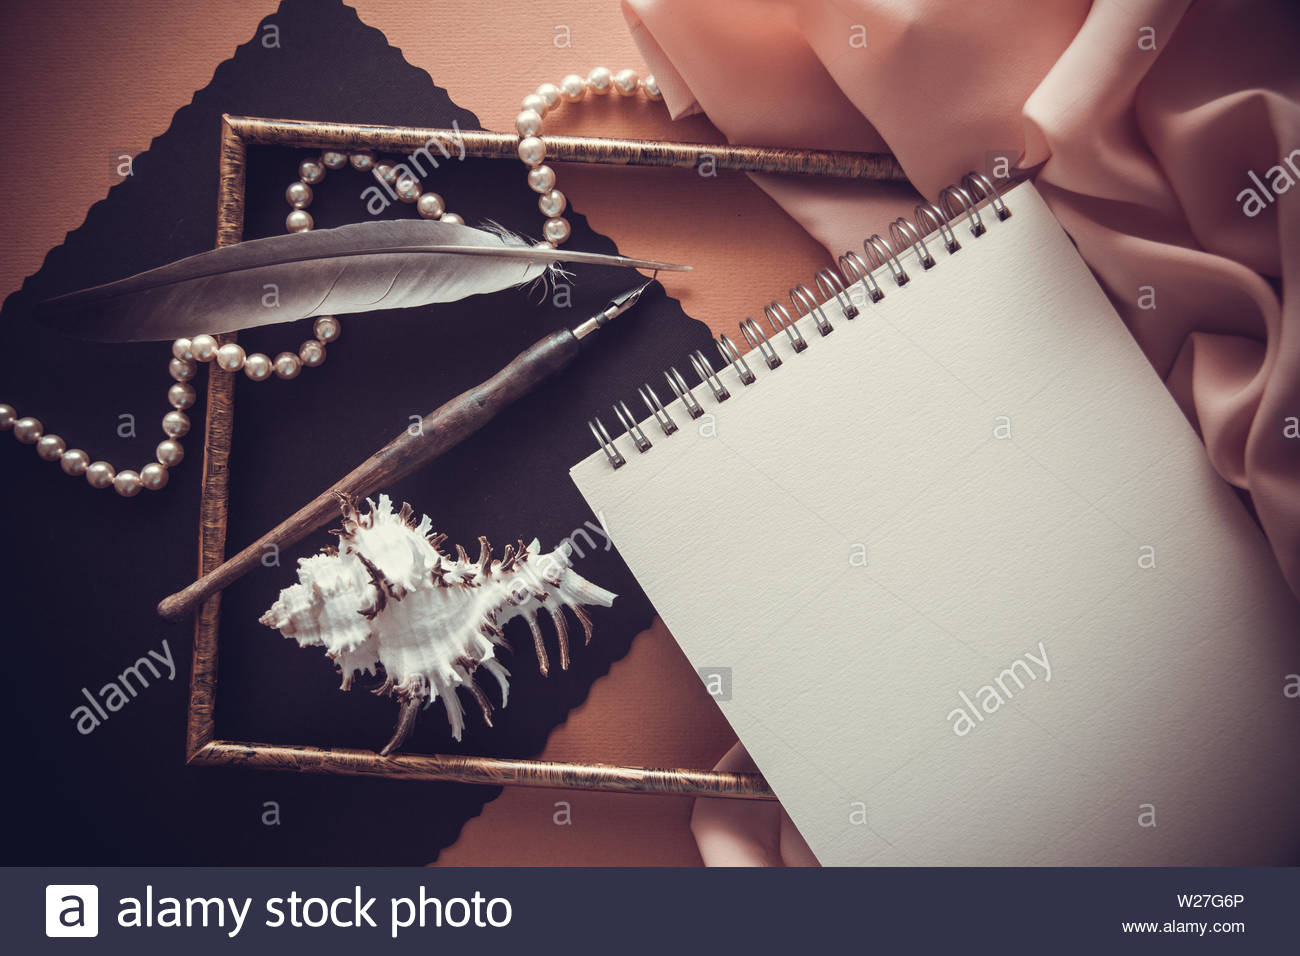 decorative background for illustrating with postcard and articstic accessories - Stock Image